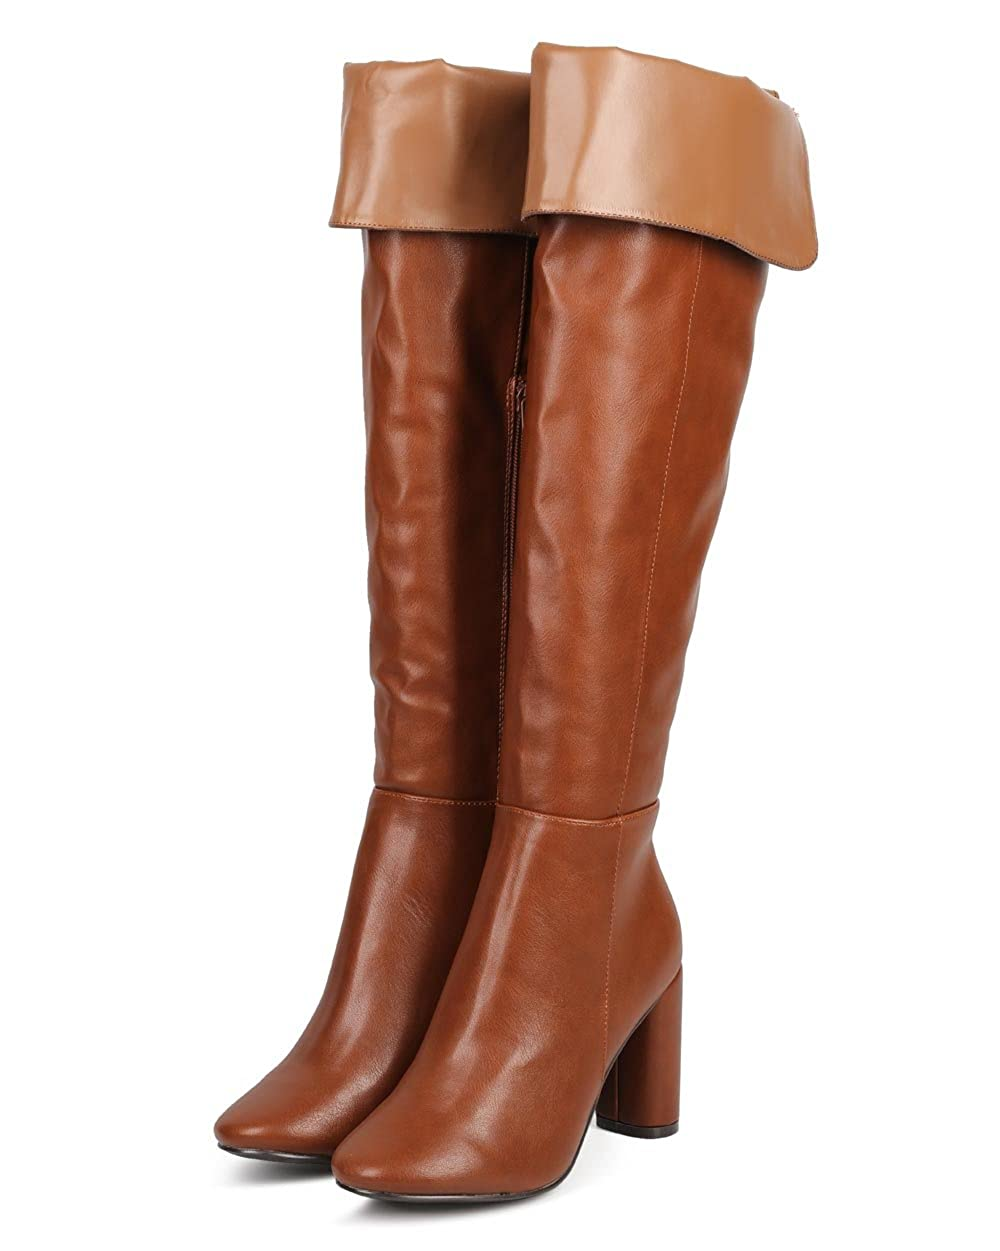 640dd39fb1bbc Women's Tan Faux Leather Fold Over Knee-High Tailored Pirate Boot -  DeluxeAdultCostumes.com